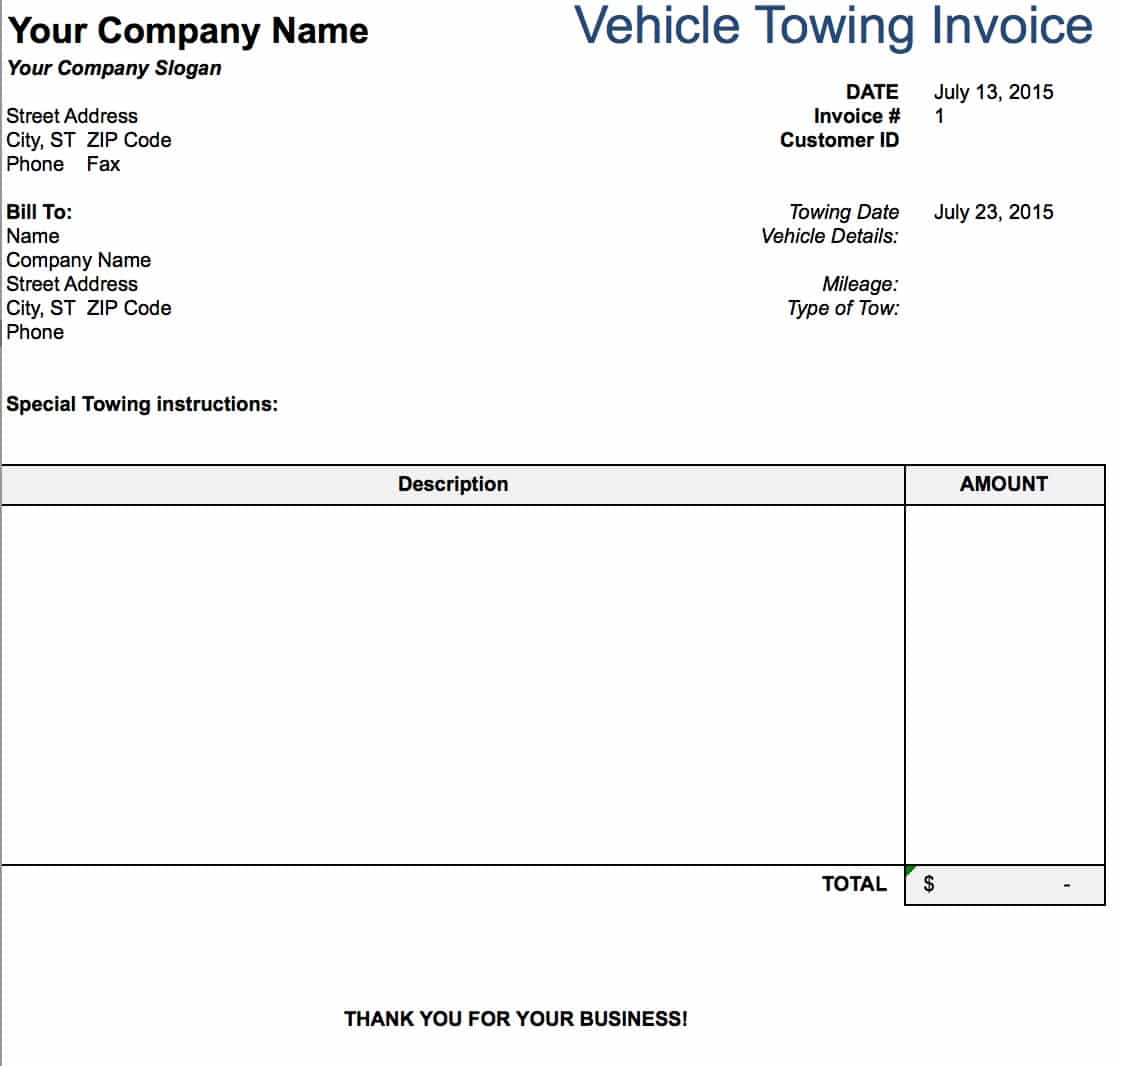 Free Tow Service Invoice Template Excel PDF Word Doc - Invoices in word for service business